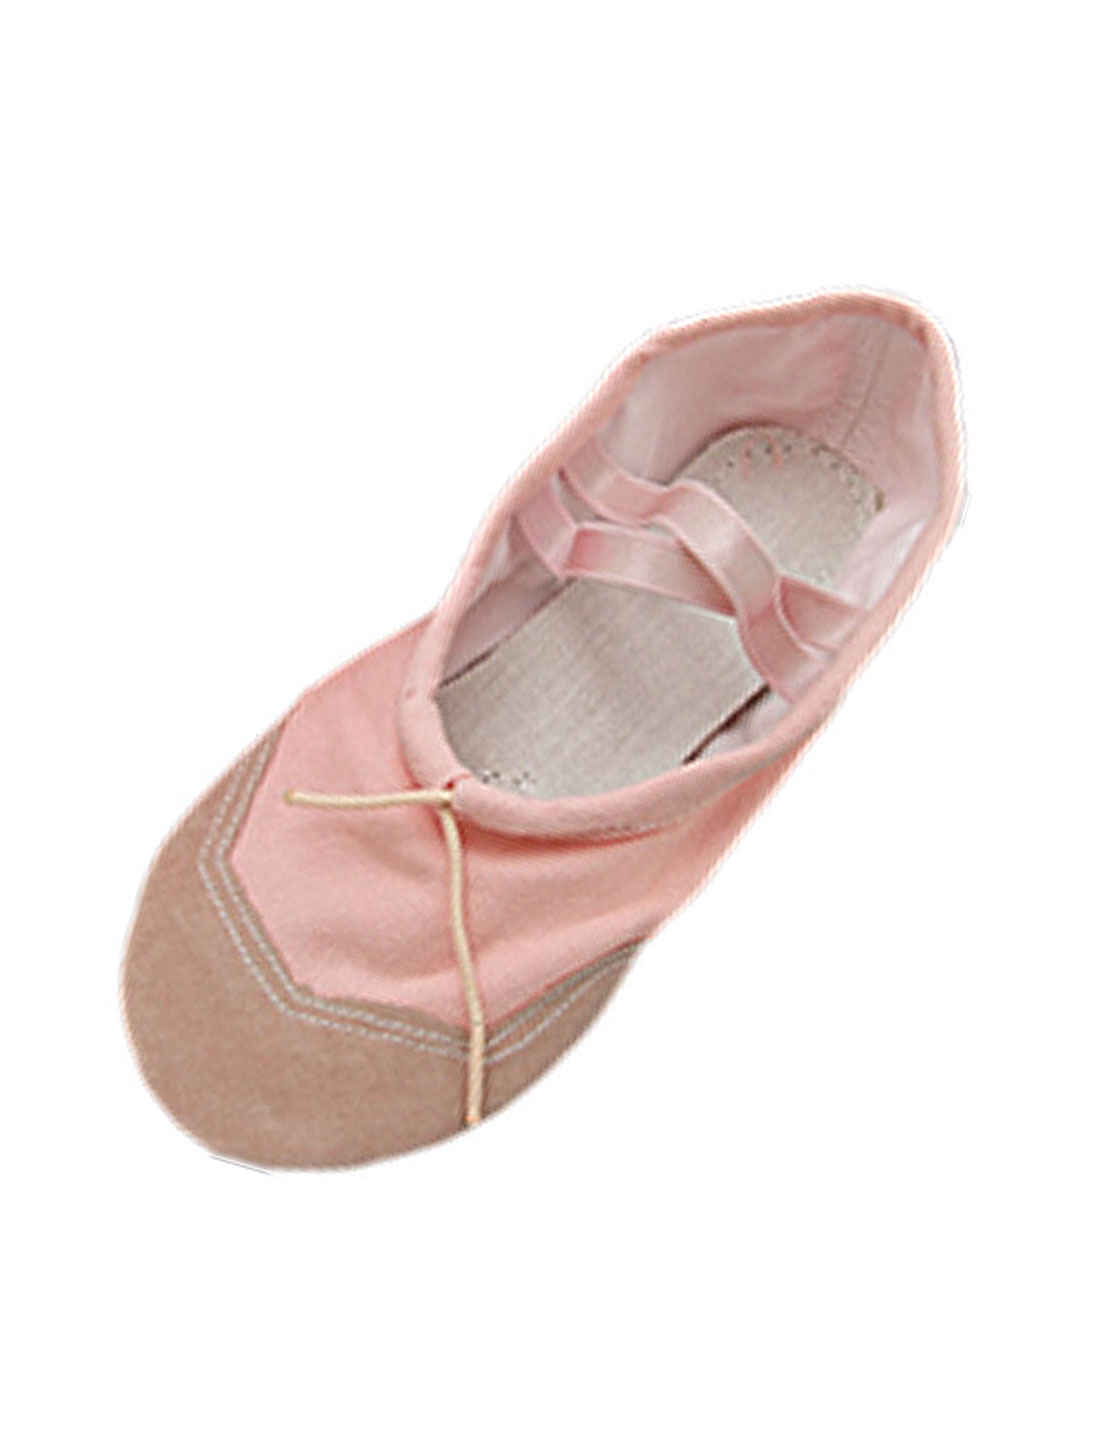 Elastic Band Pink Soft Dancing Dance Girl's Shoes Size 13